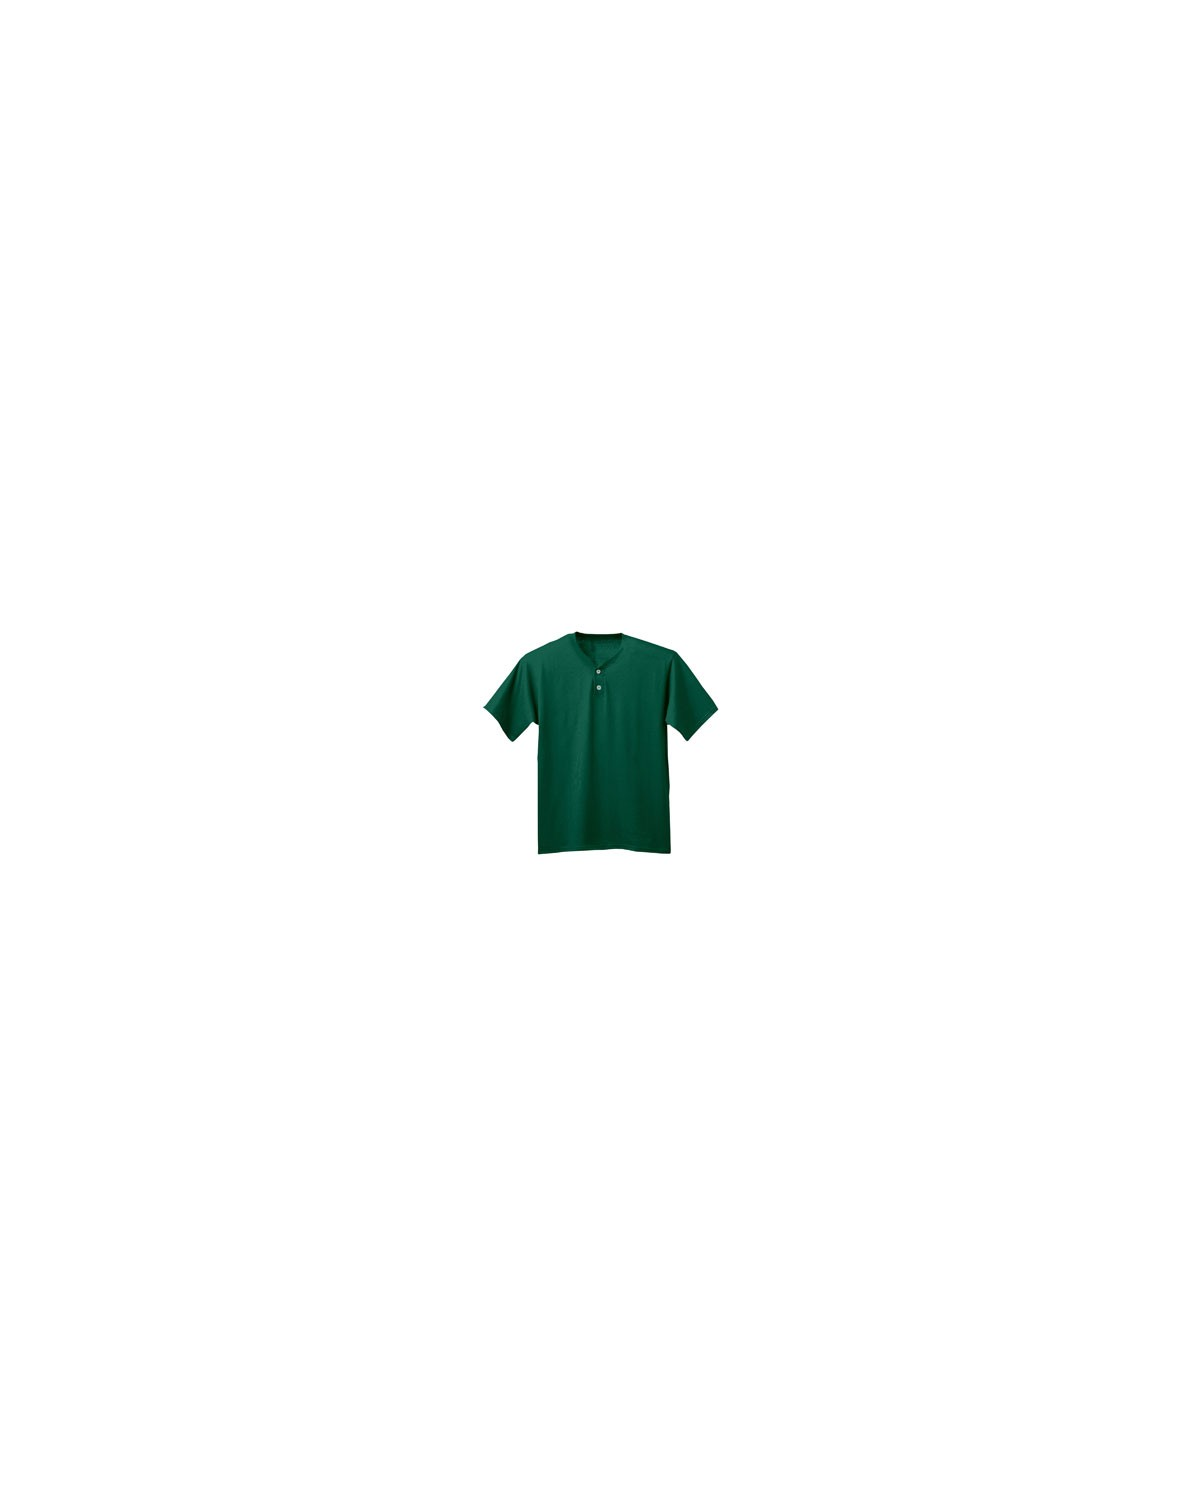 N3143 A4 Drop Ship FOREST GREEN